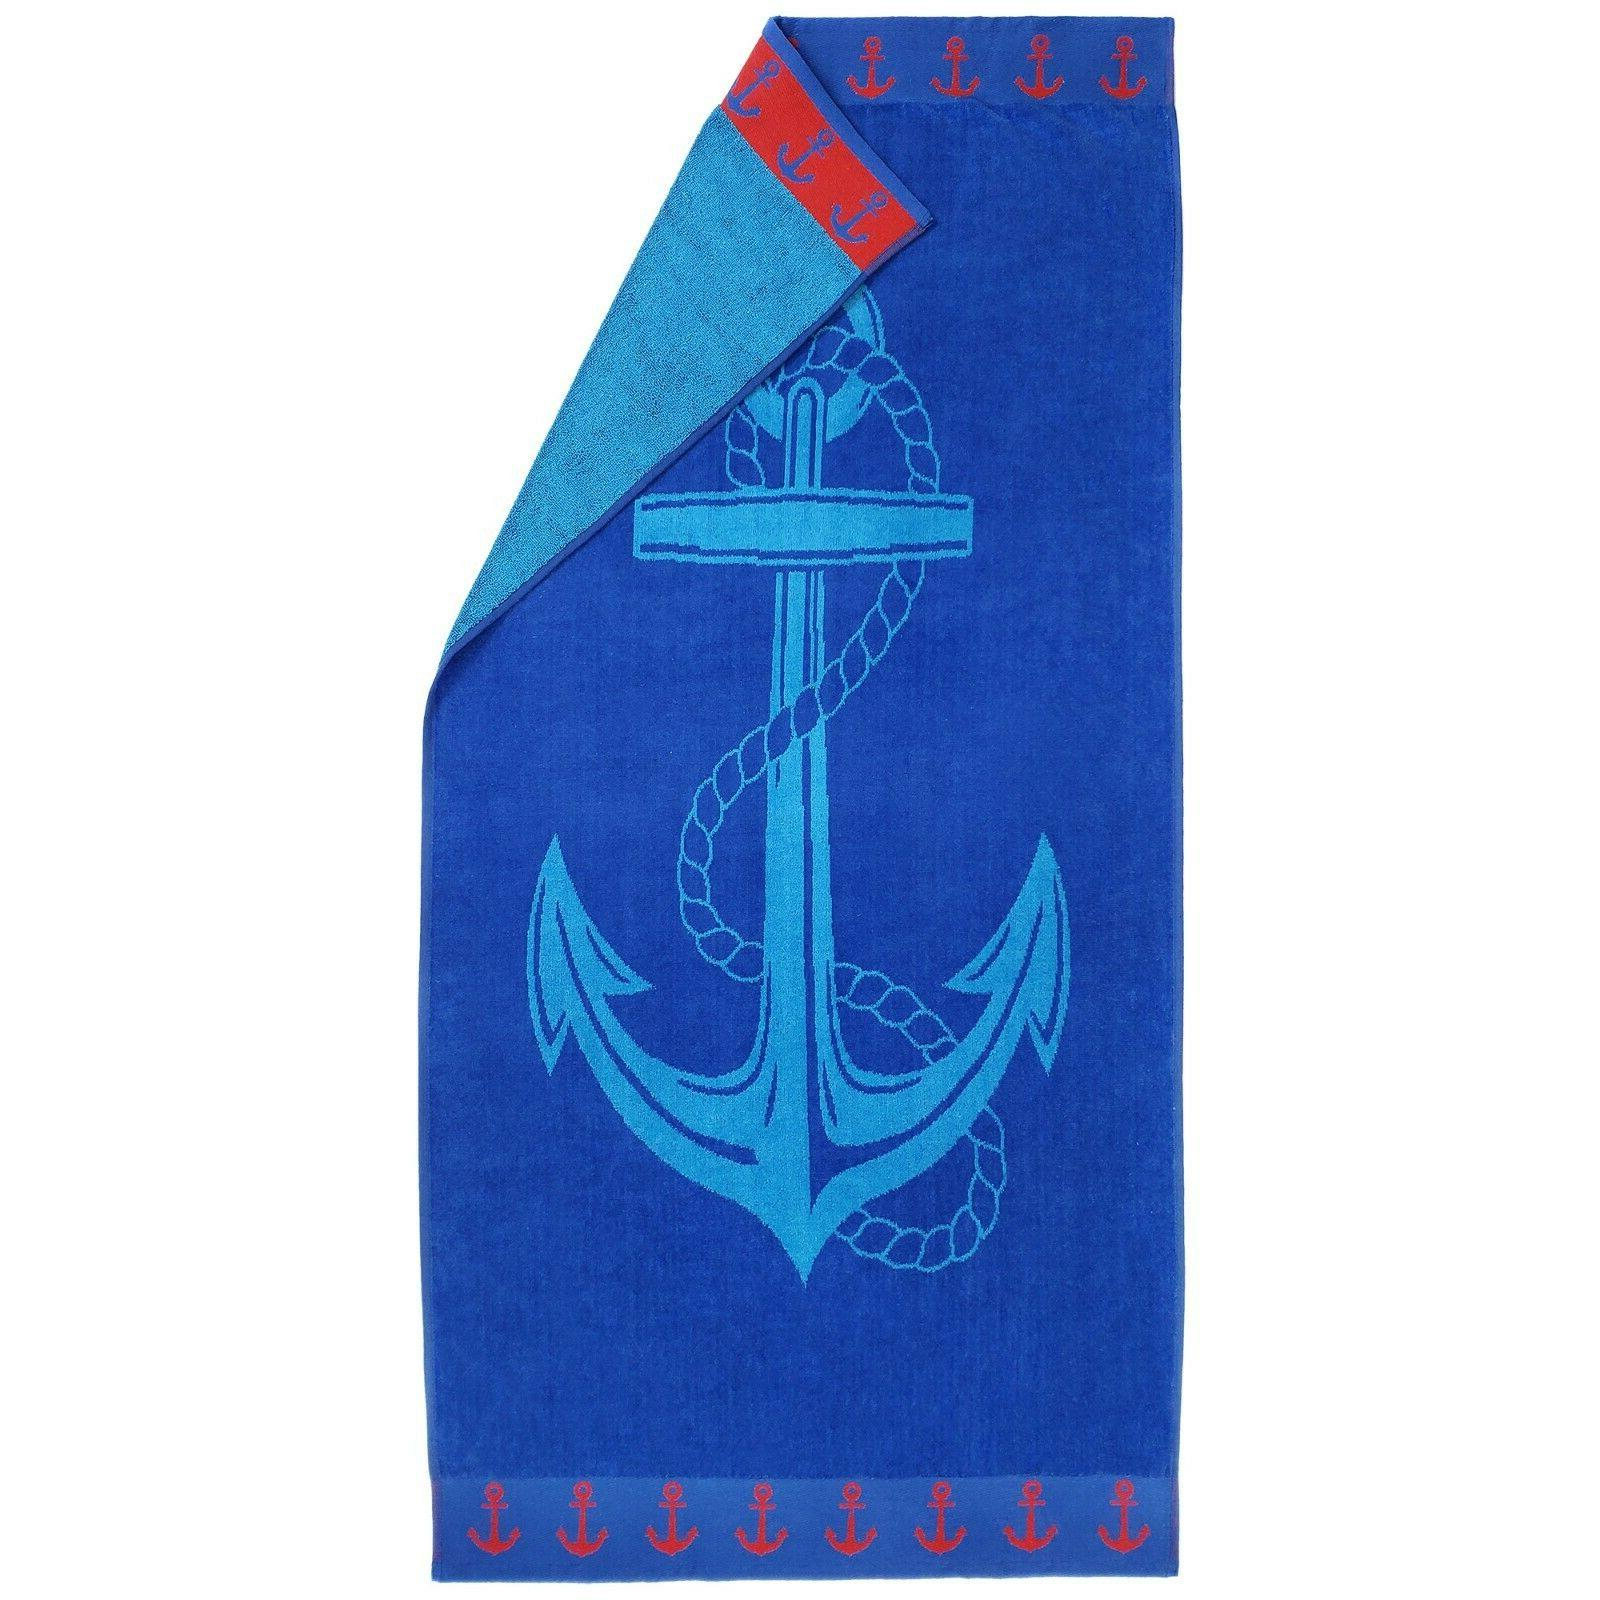 Kaufman 30 Velour Jacquard Beach Towels and Pool Pack of 4